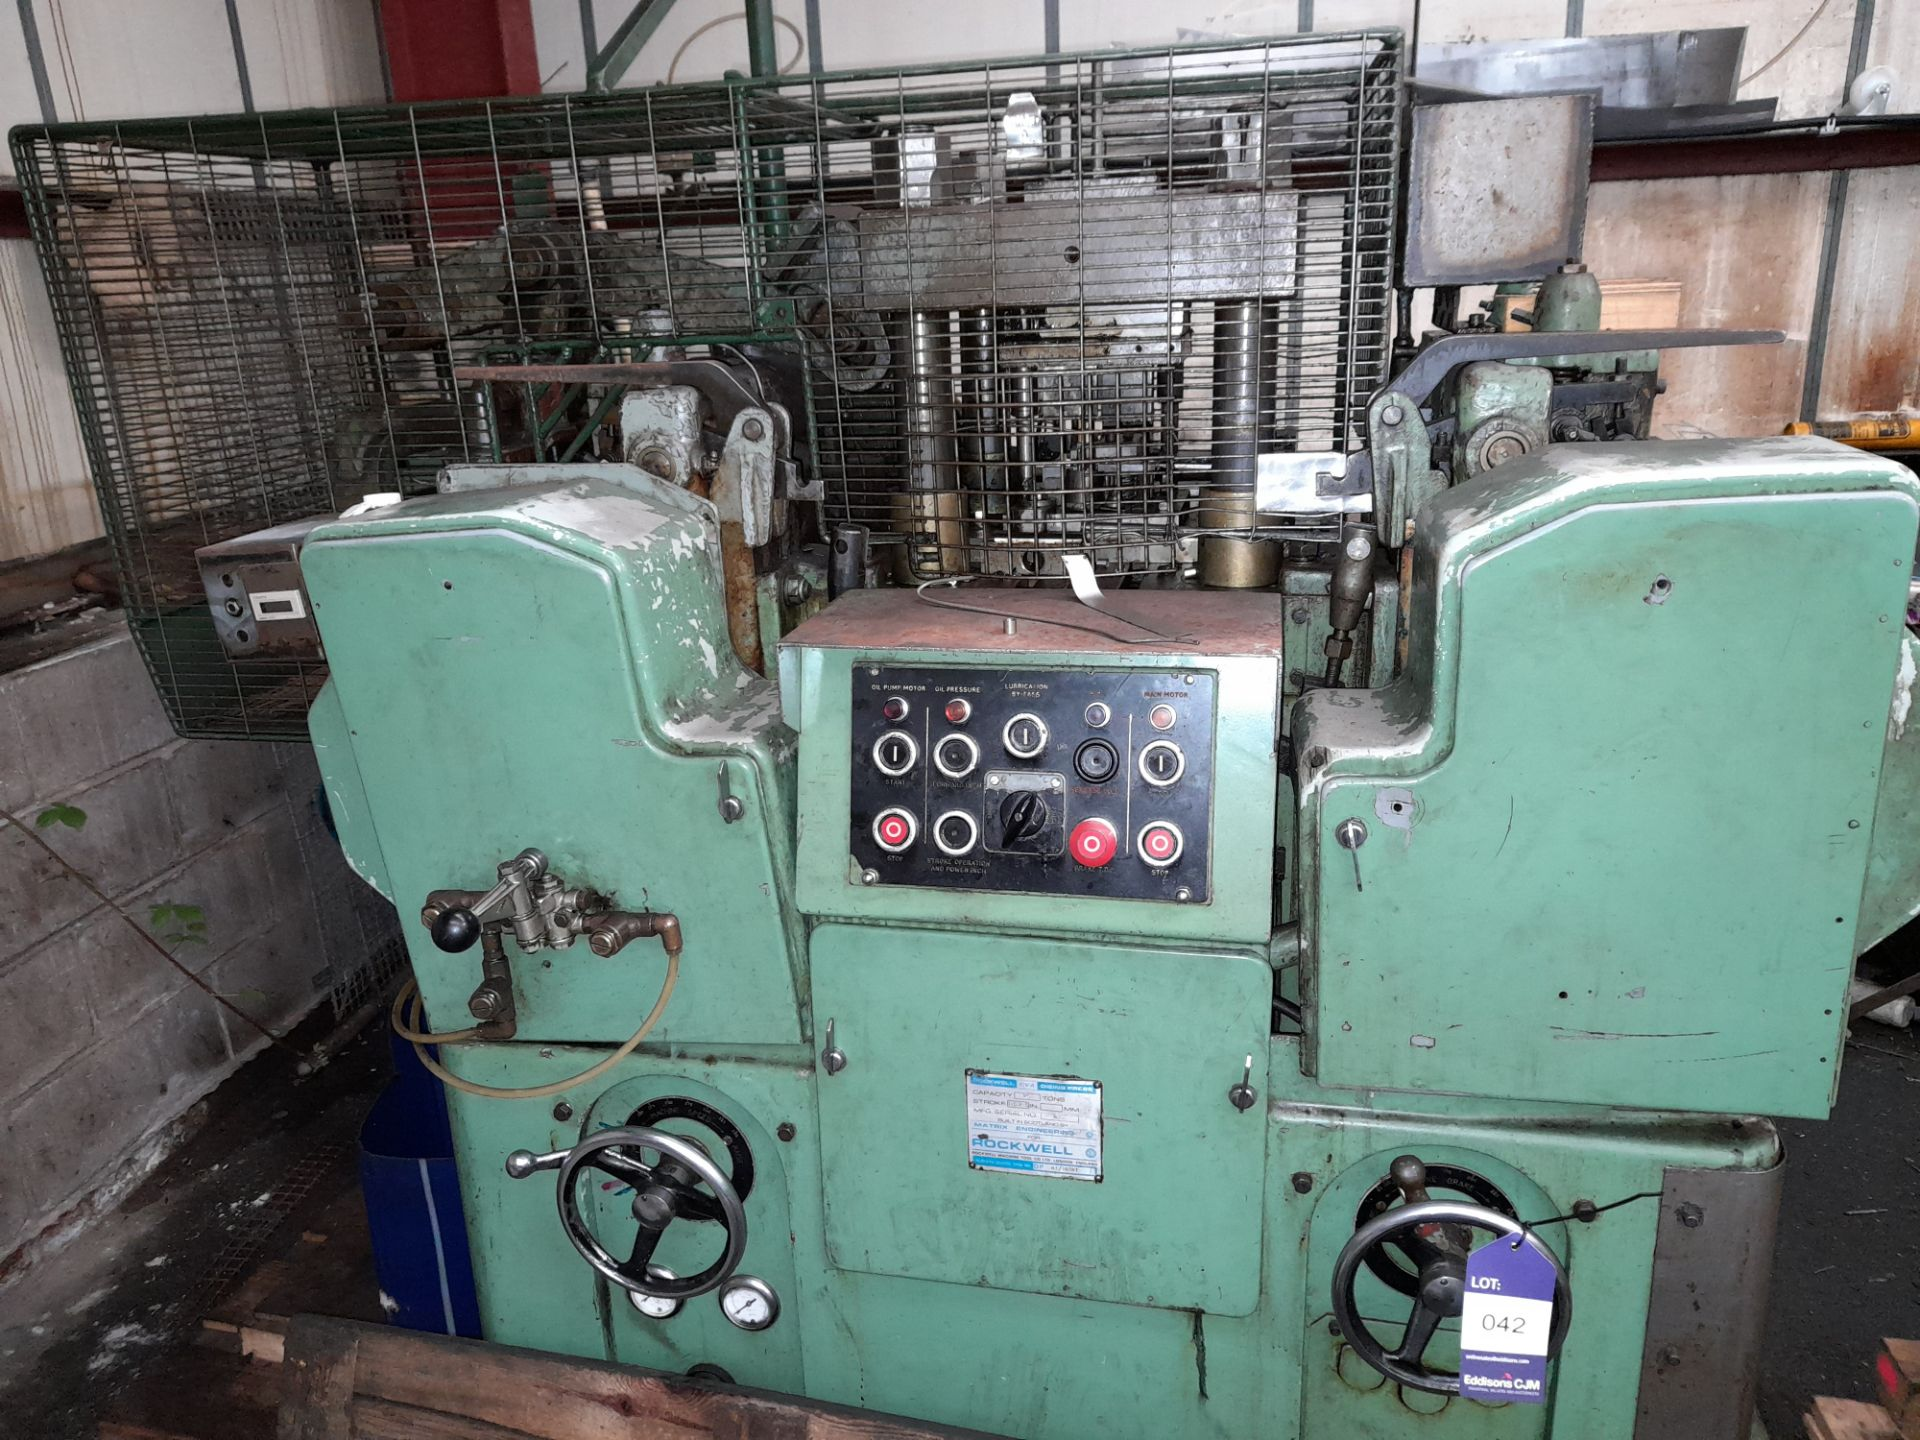 80 Rockwell 25 Ton DP MT/188T Multi Slide Forming Press with 10mm Raschig Ring Tool - Image 2 of 9